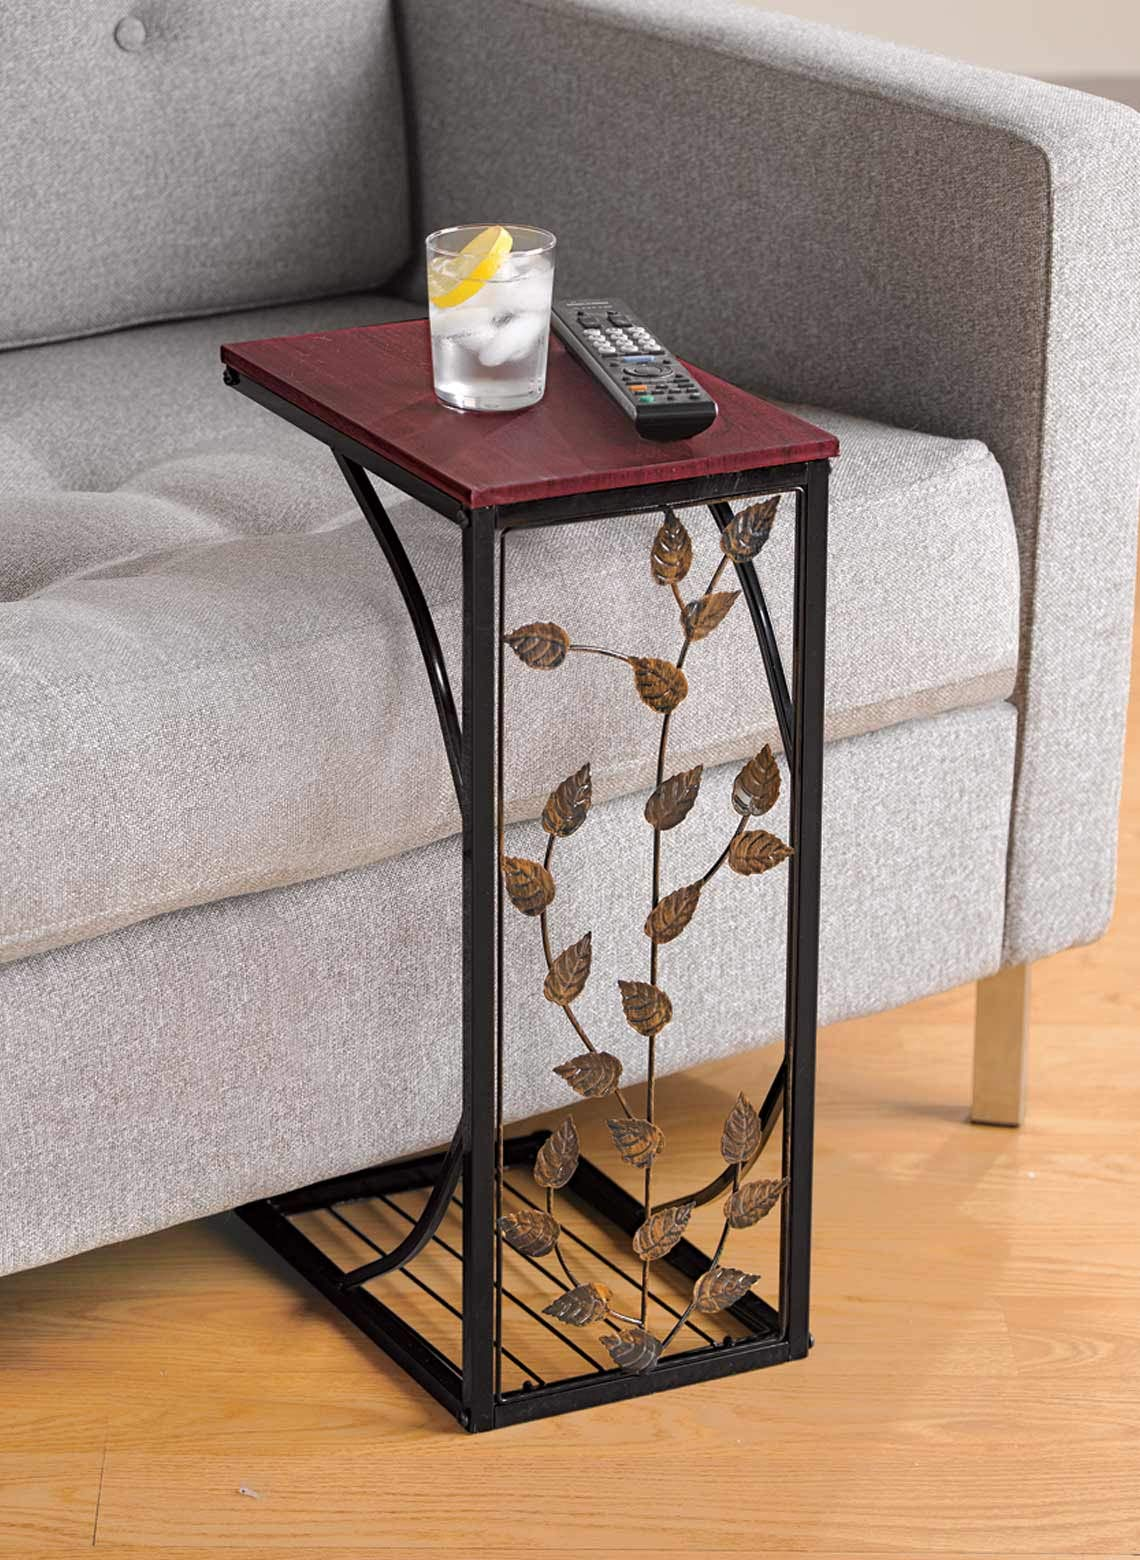 Sofa Side and End Table, Small - Metal, Dark Brown Wood Top With Leaf Design - Perfect for Your Living Room, Slides Up To Sofa / Chair / Recliner - Keep Snacks, Drinks Books & Phone At Easy Reach by Carol Wright Gifts